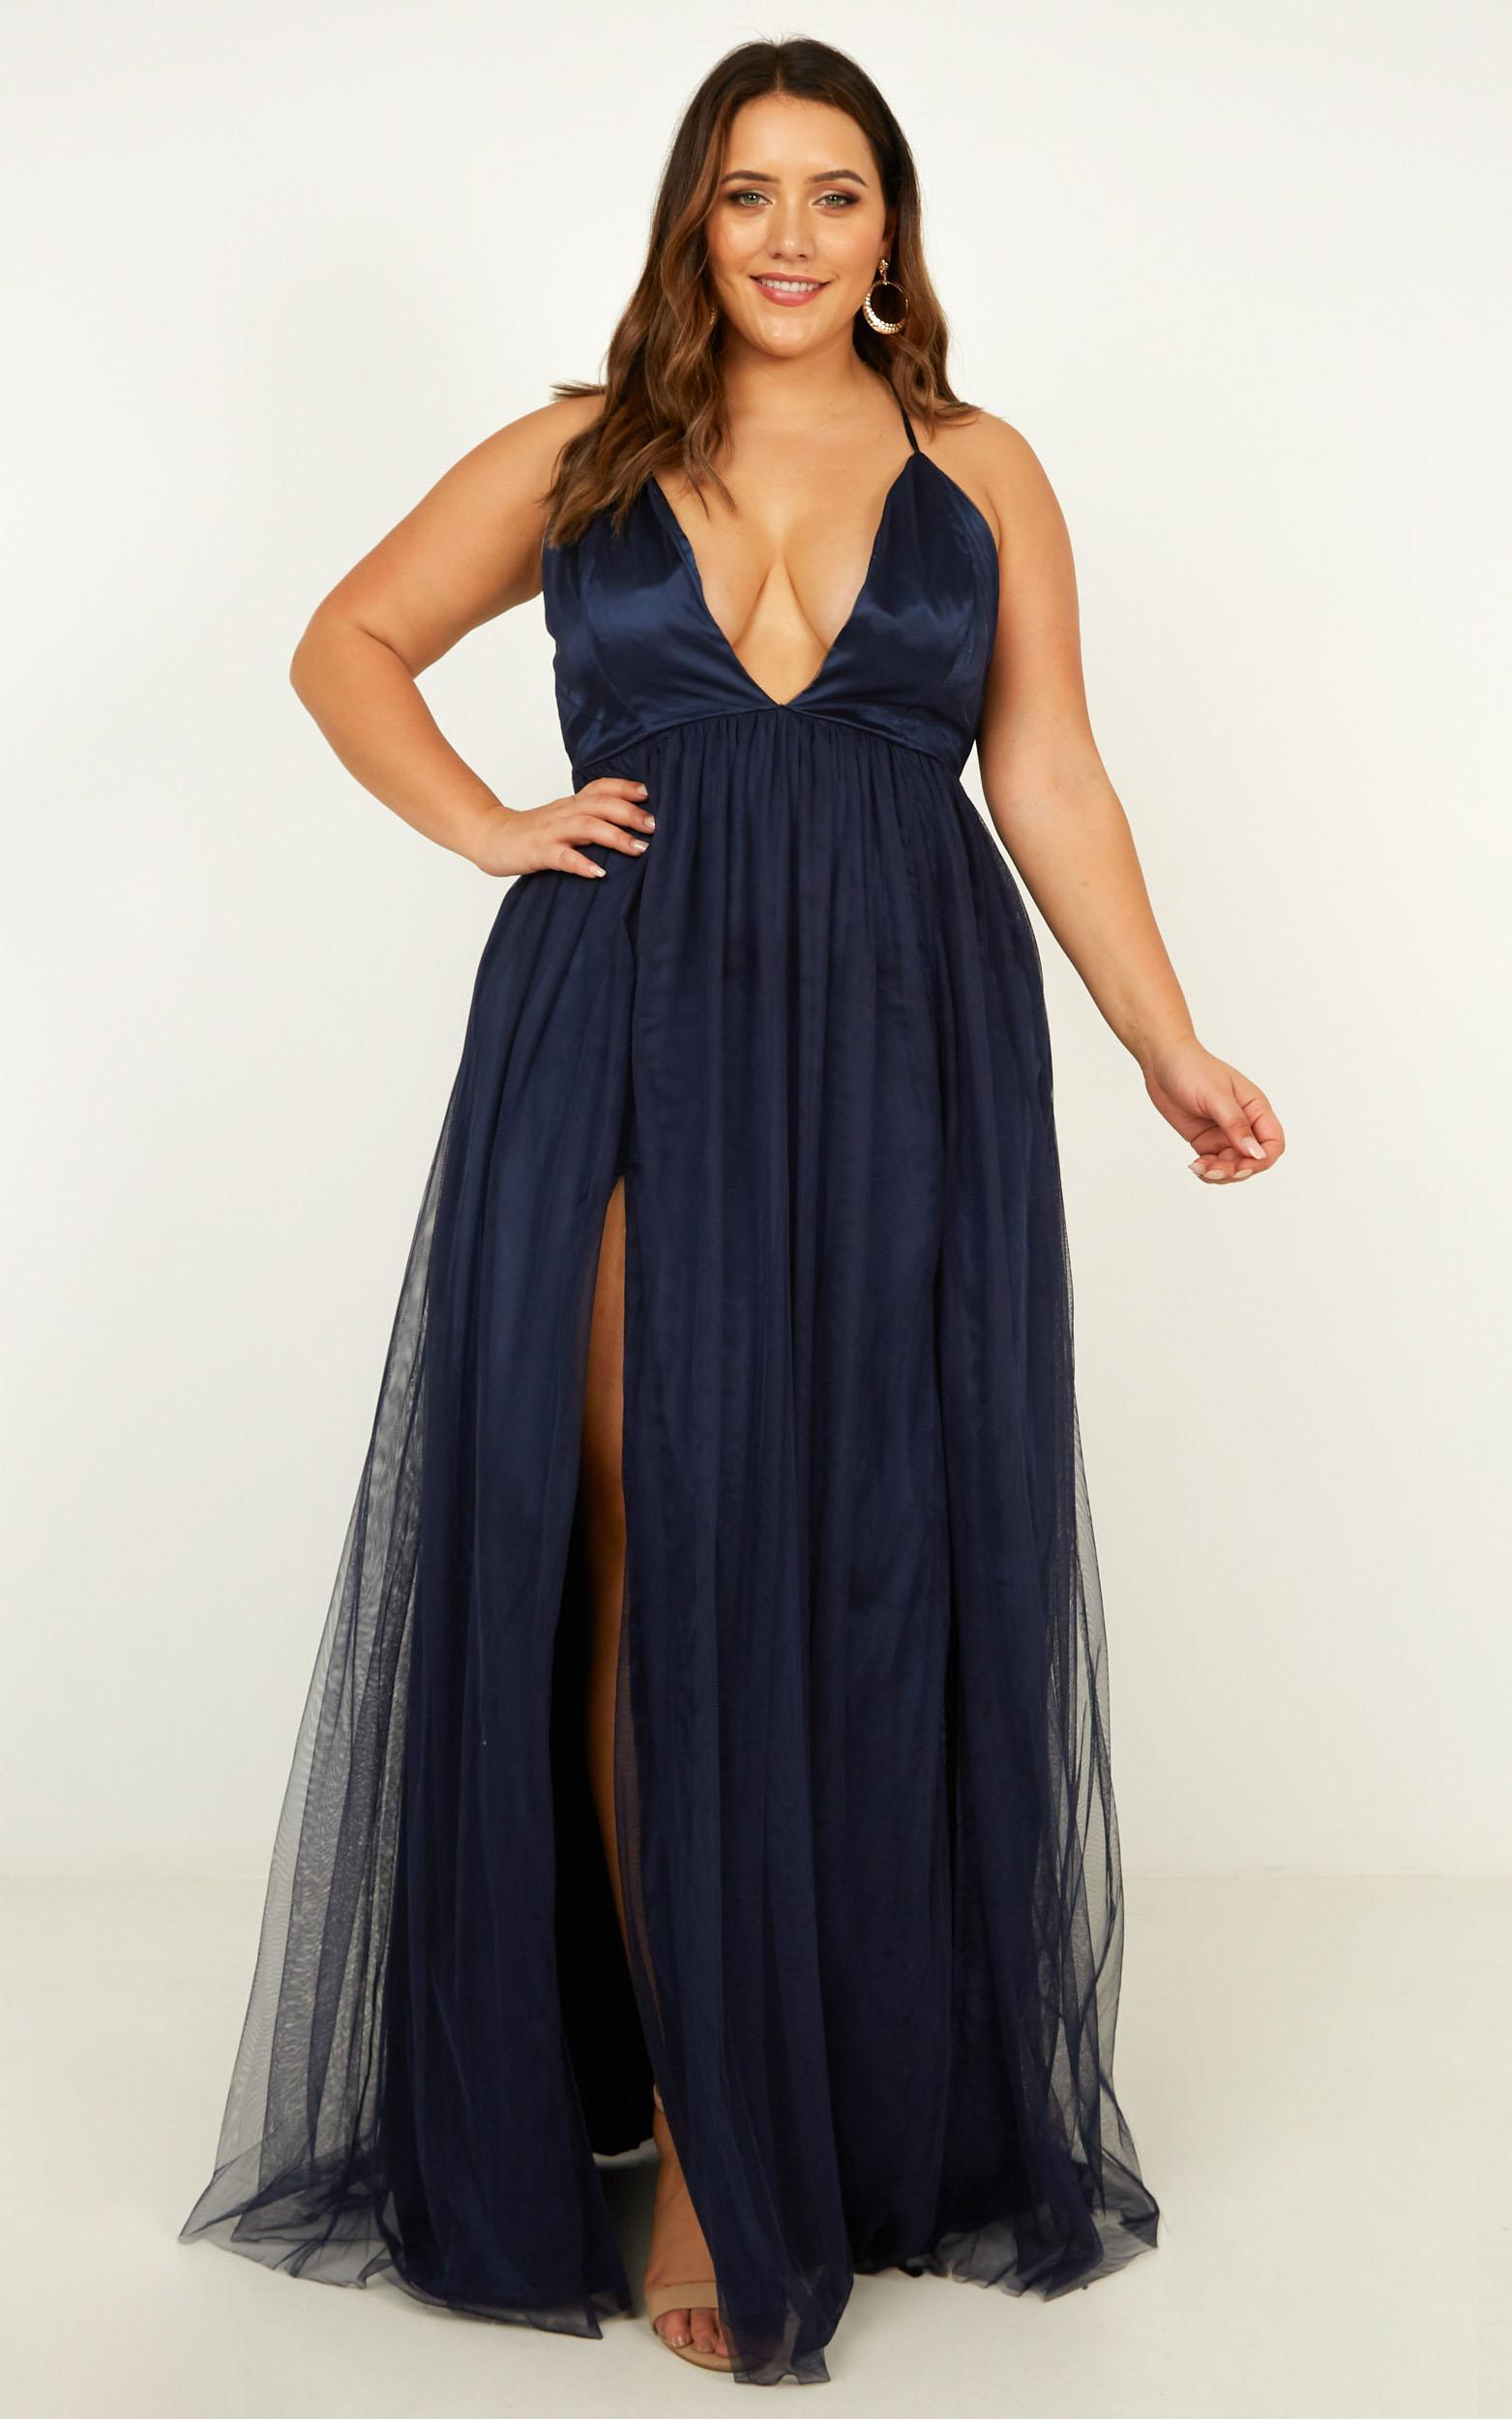 Make It Right Dress In navy - 20 (XXXXL), Navy, hi-res image number null